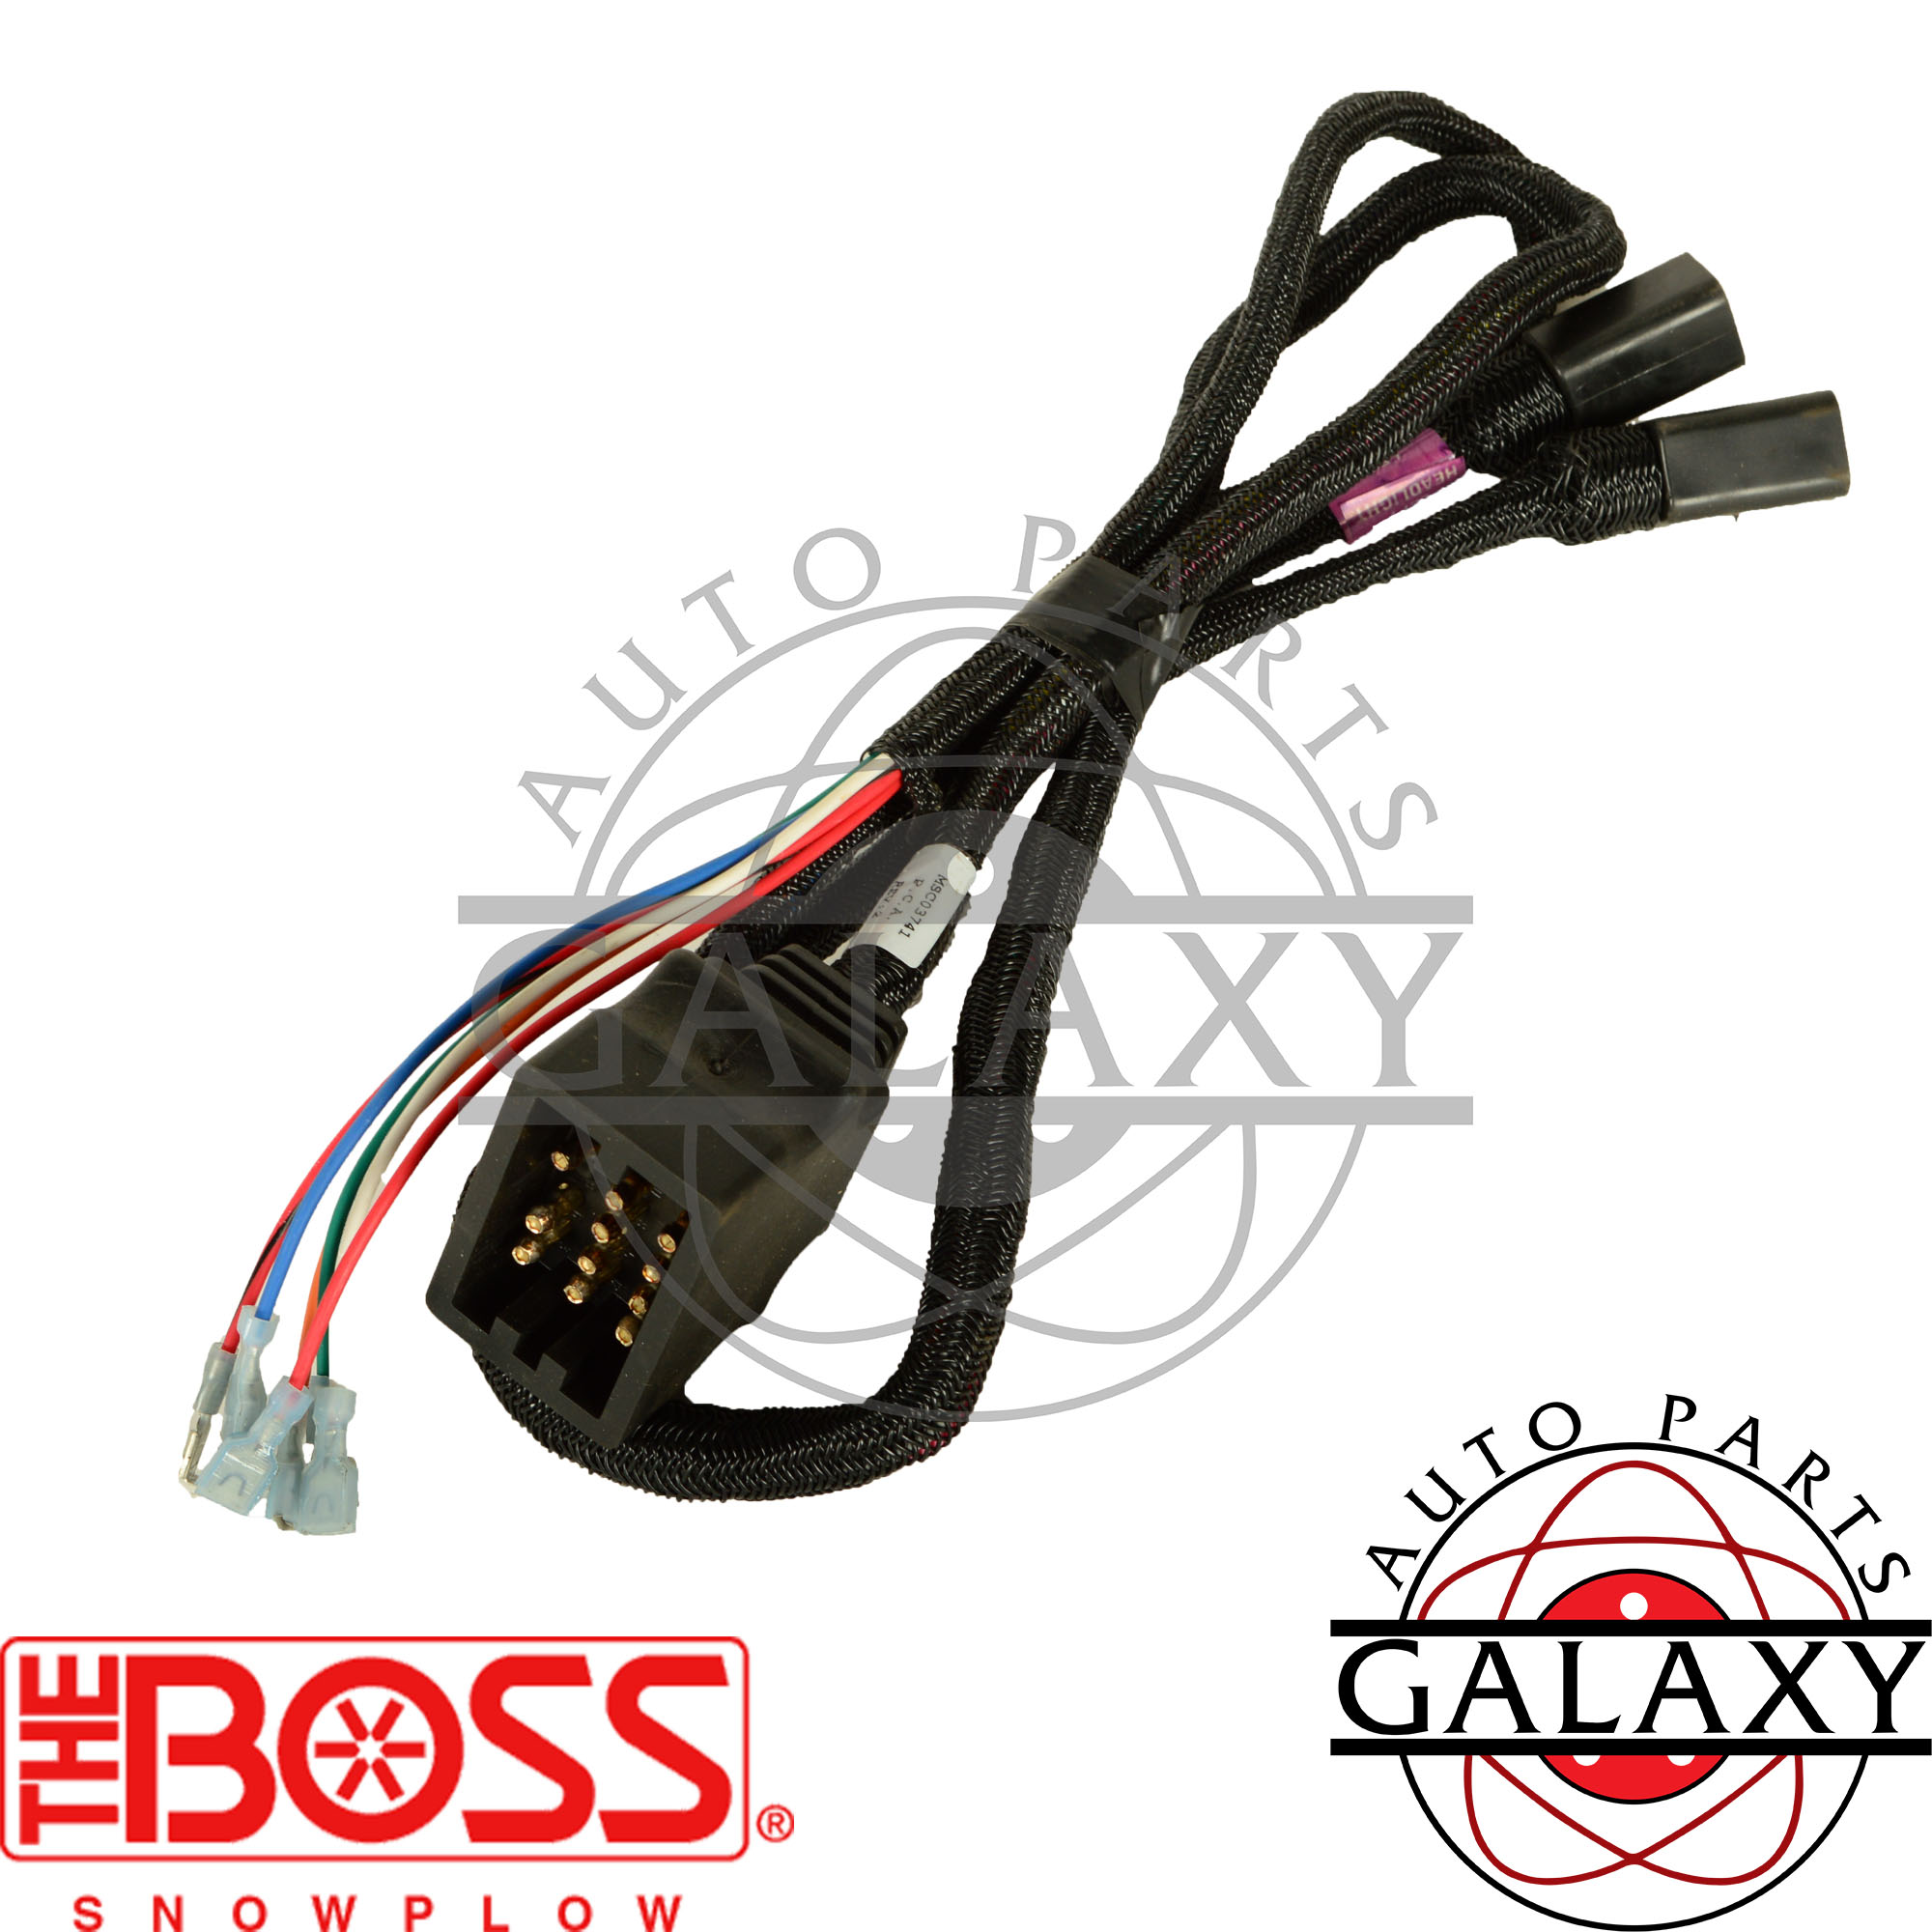 msc03741 snow plow wiring harness ebay